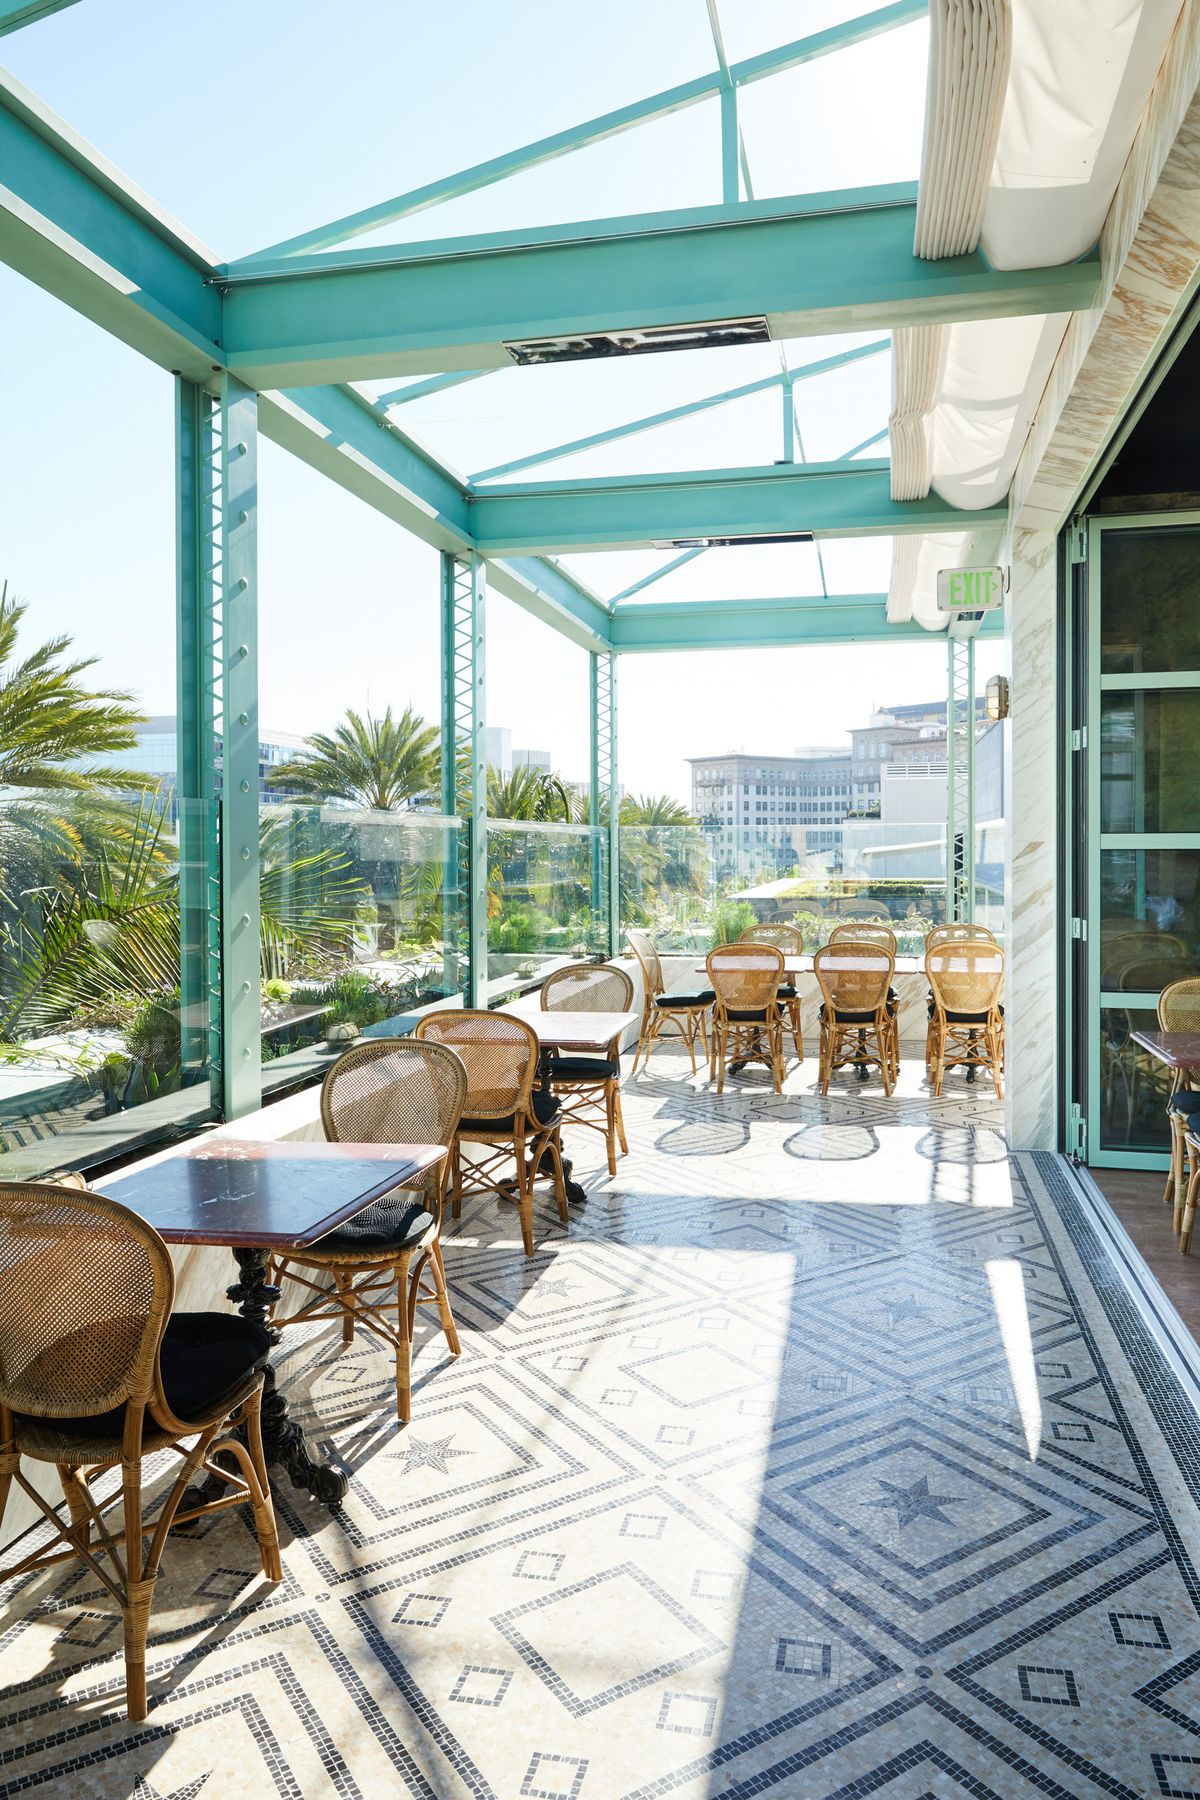 Terrace patio with wicker chairs and marble tables in Beverly Hills' Gucci Osteria.